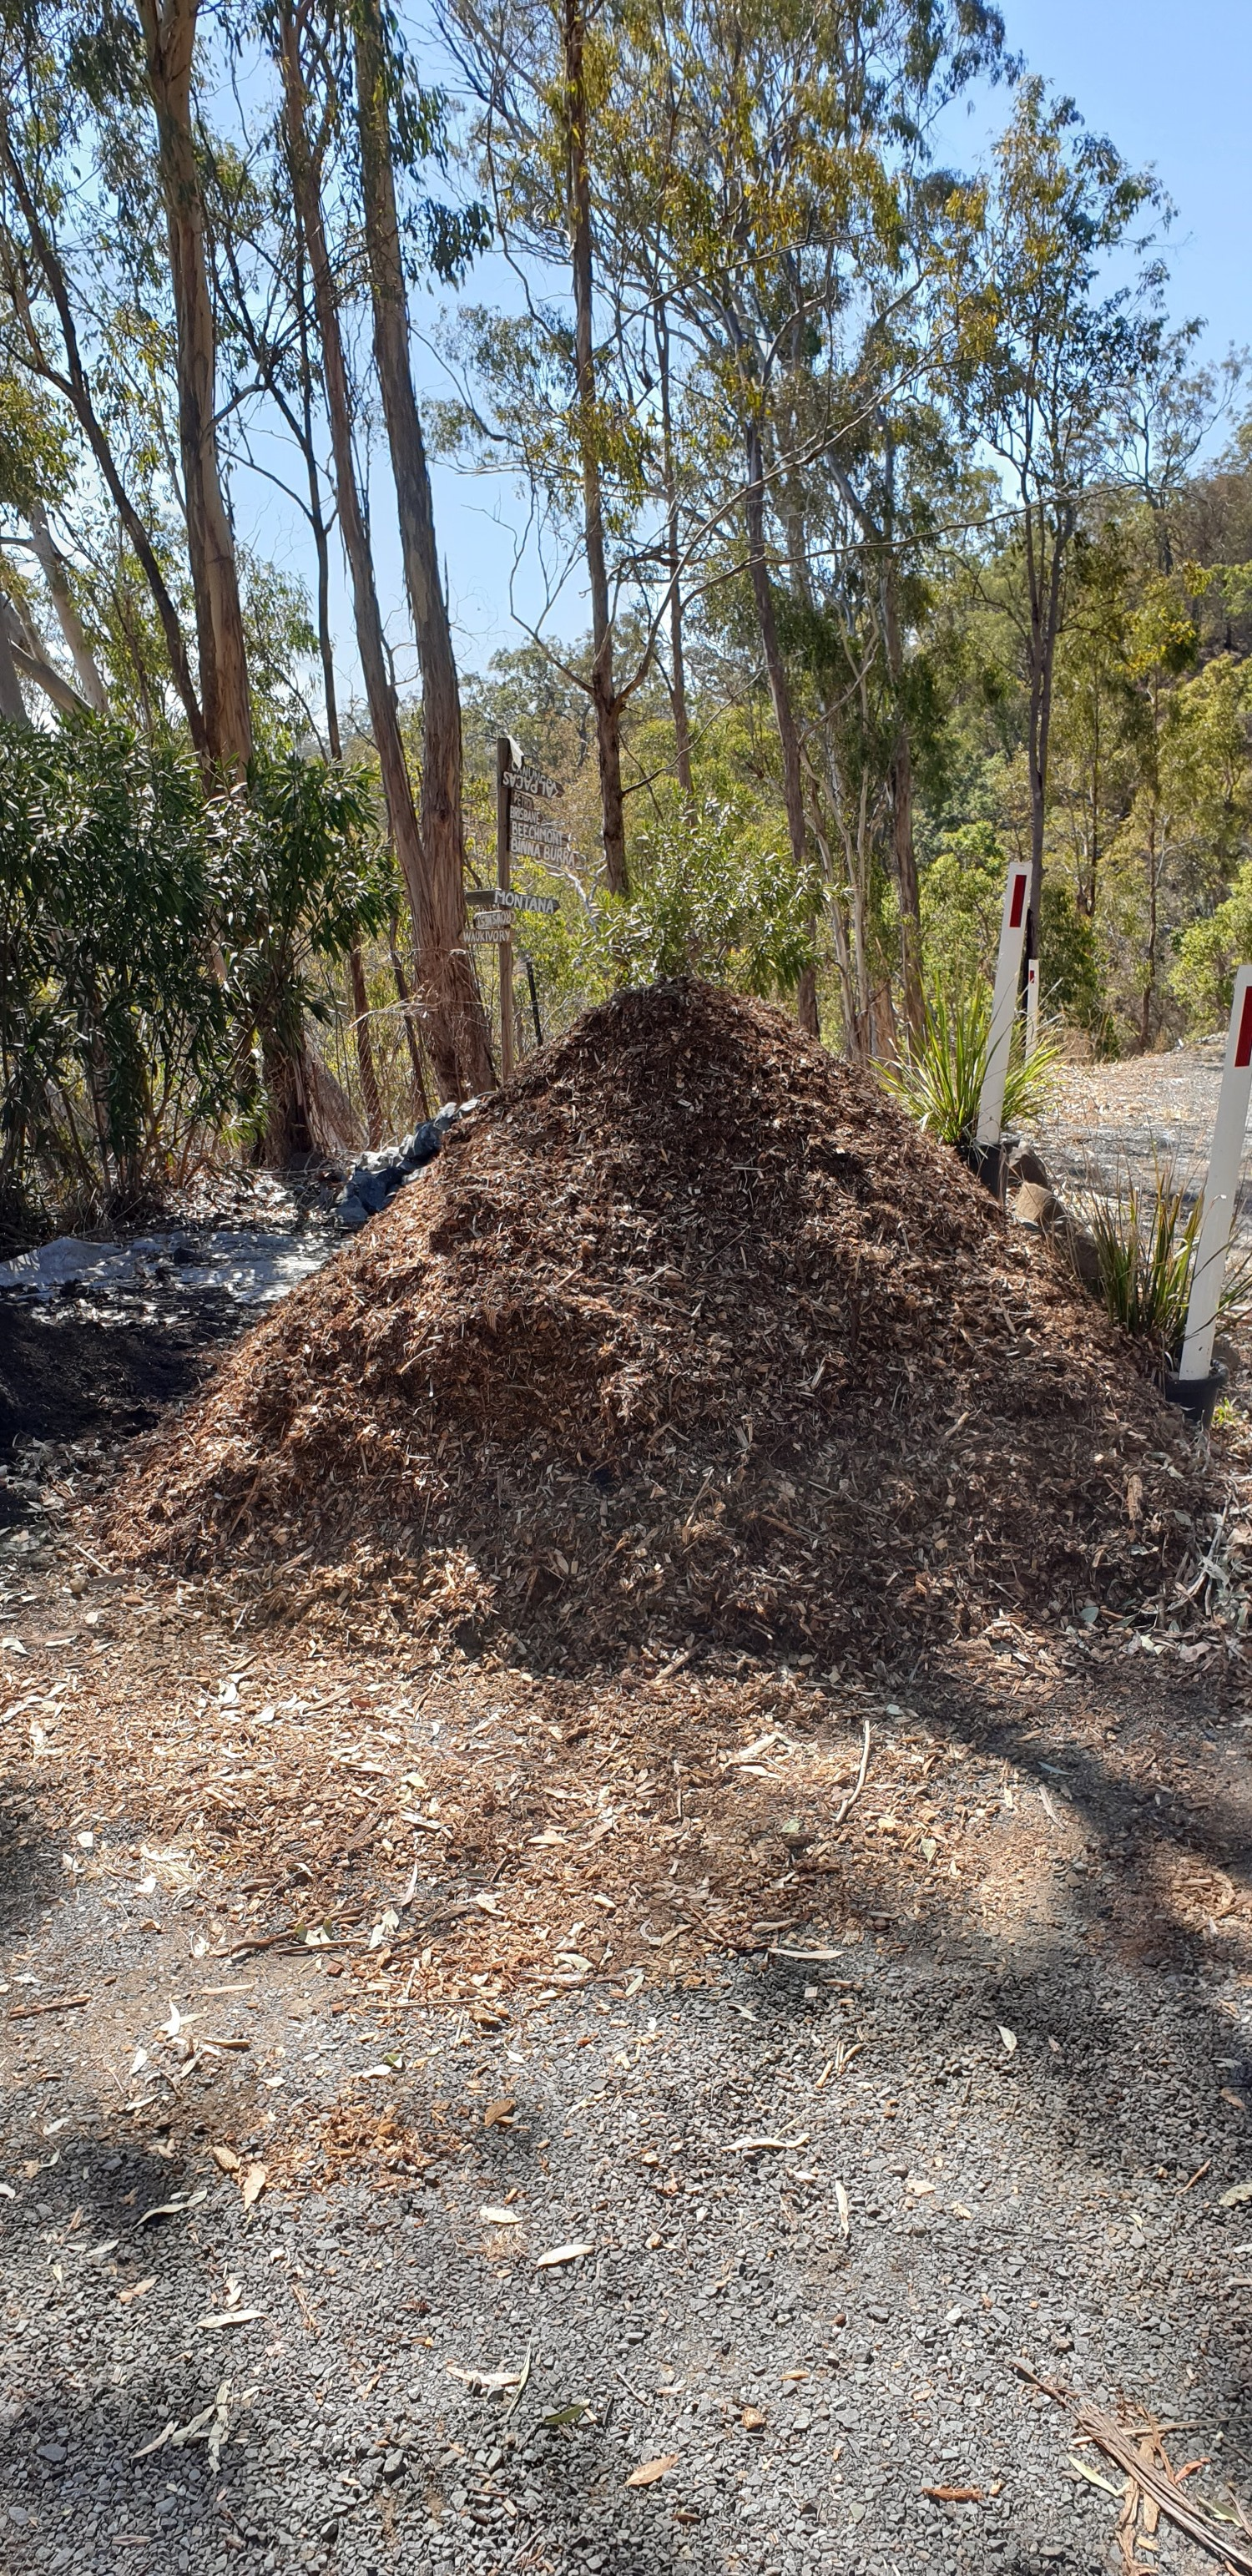 The new Mulch Pile